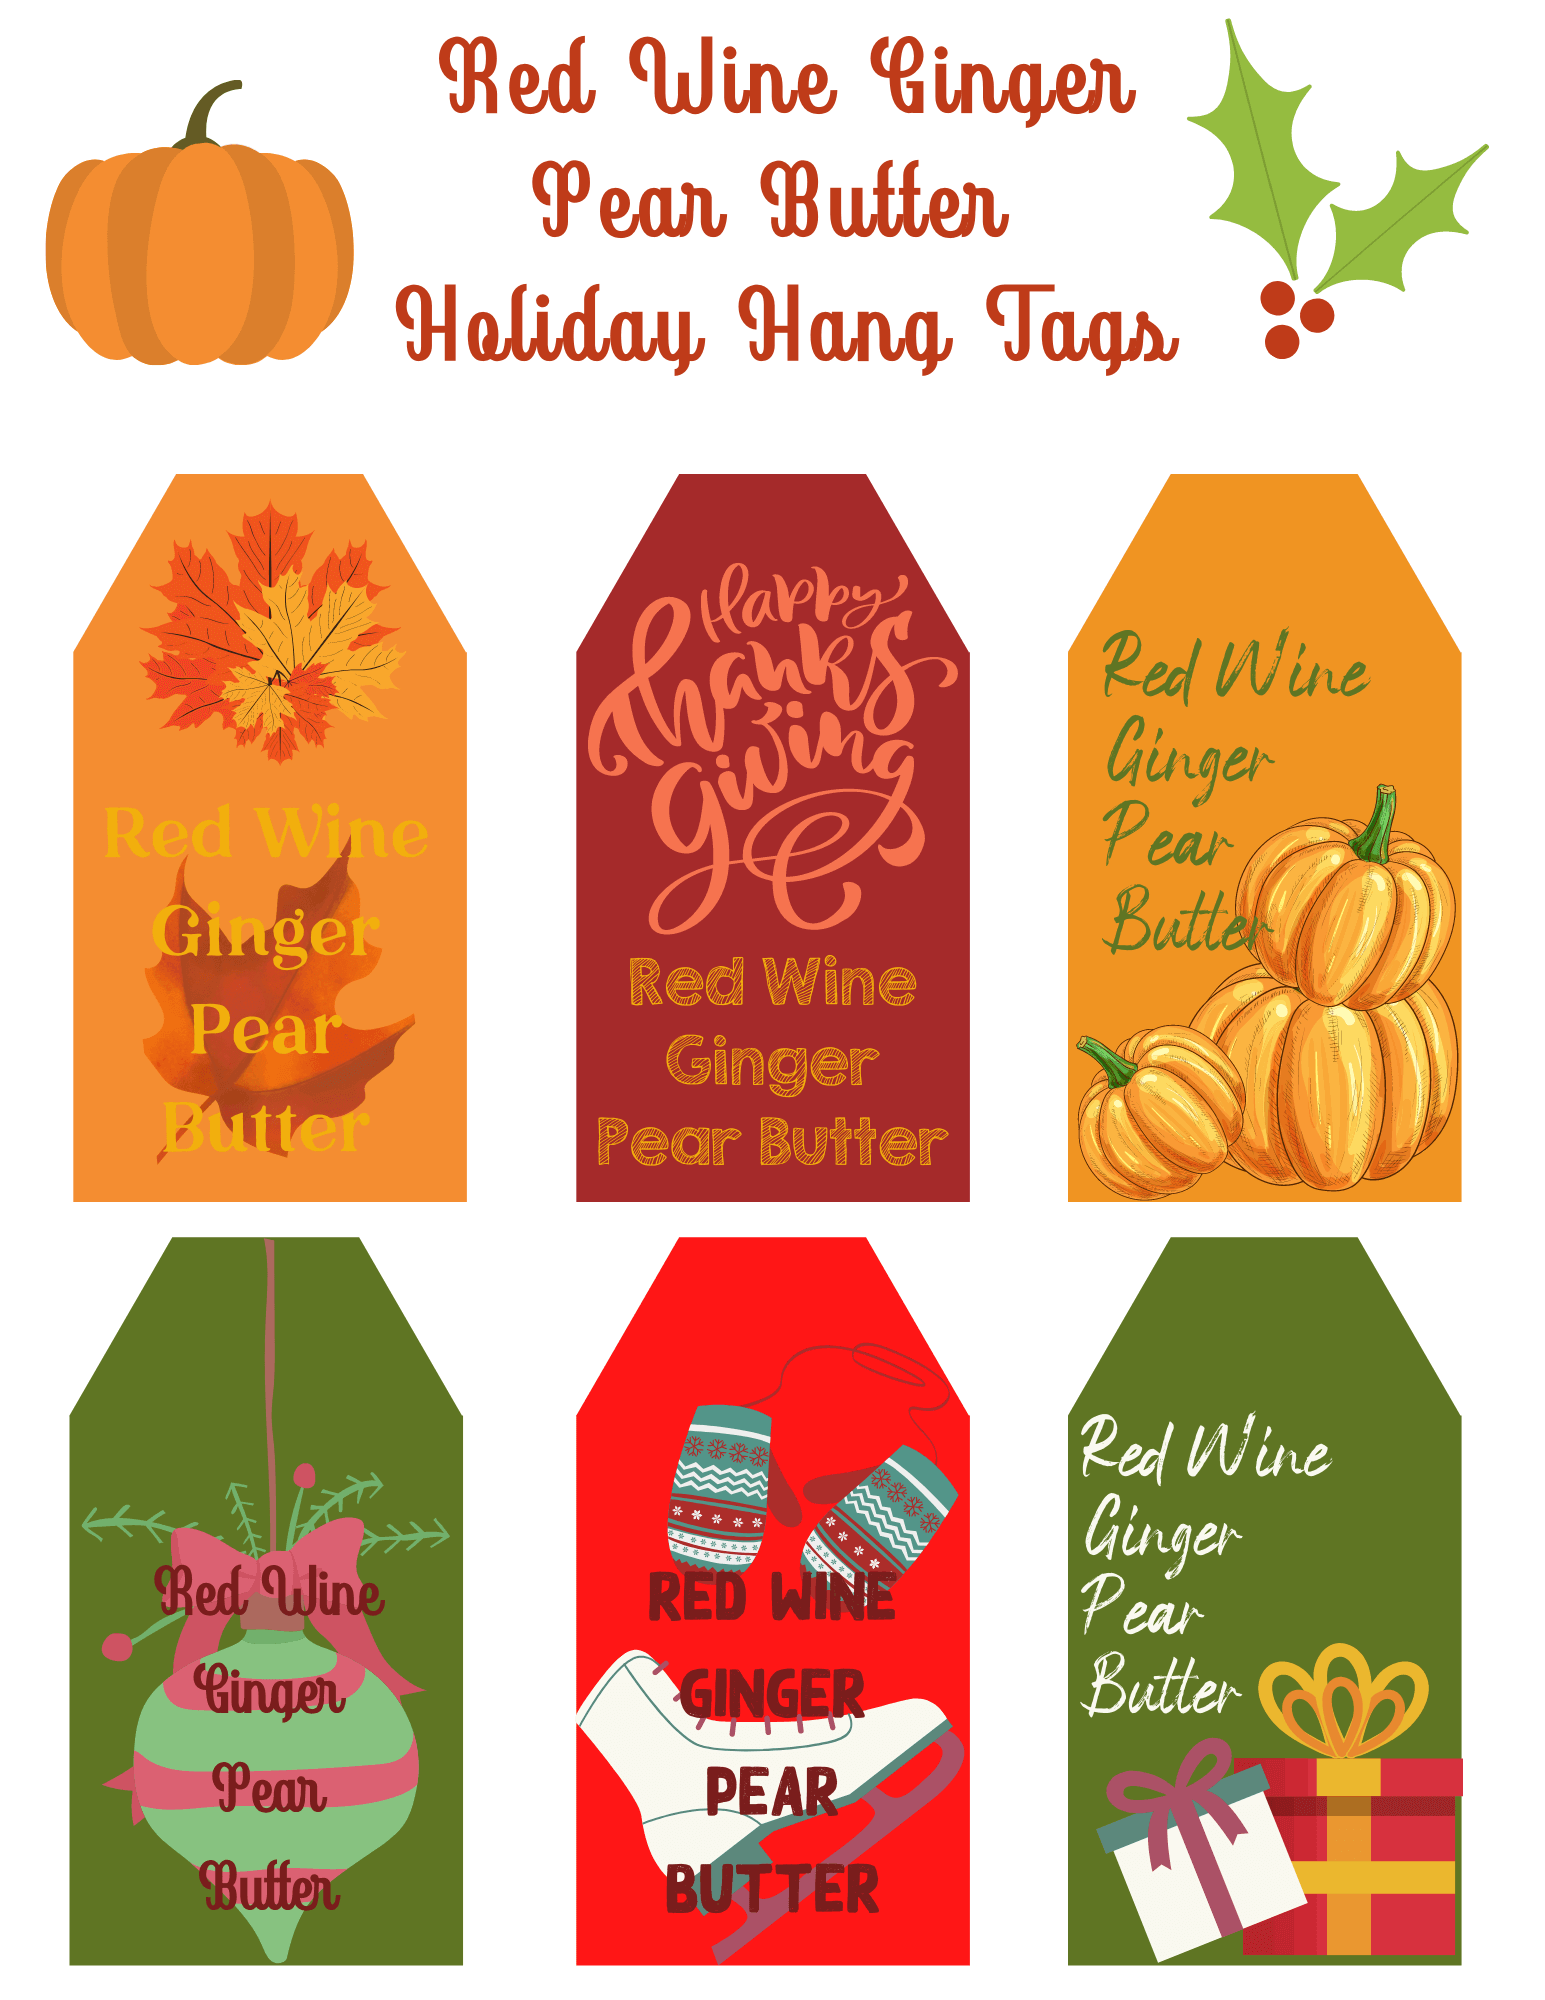 red wine ginger pear butter holiday hang tags